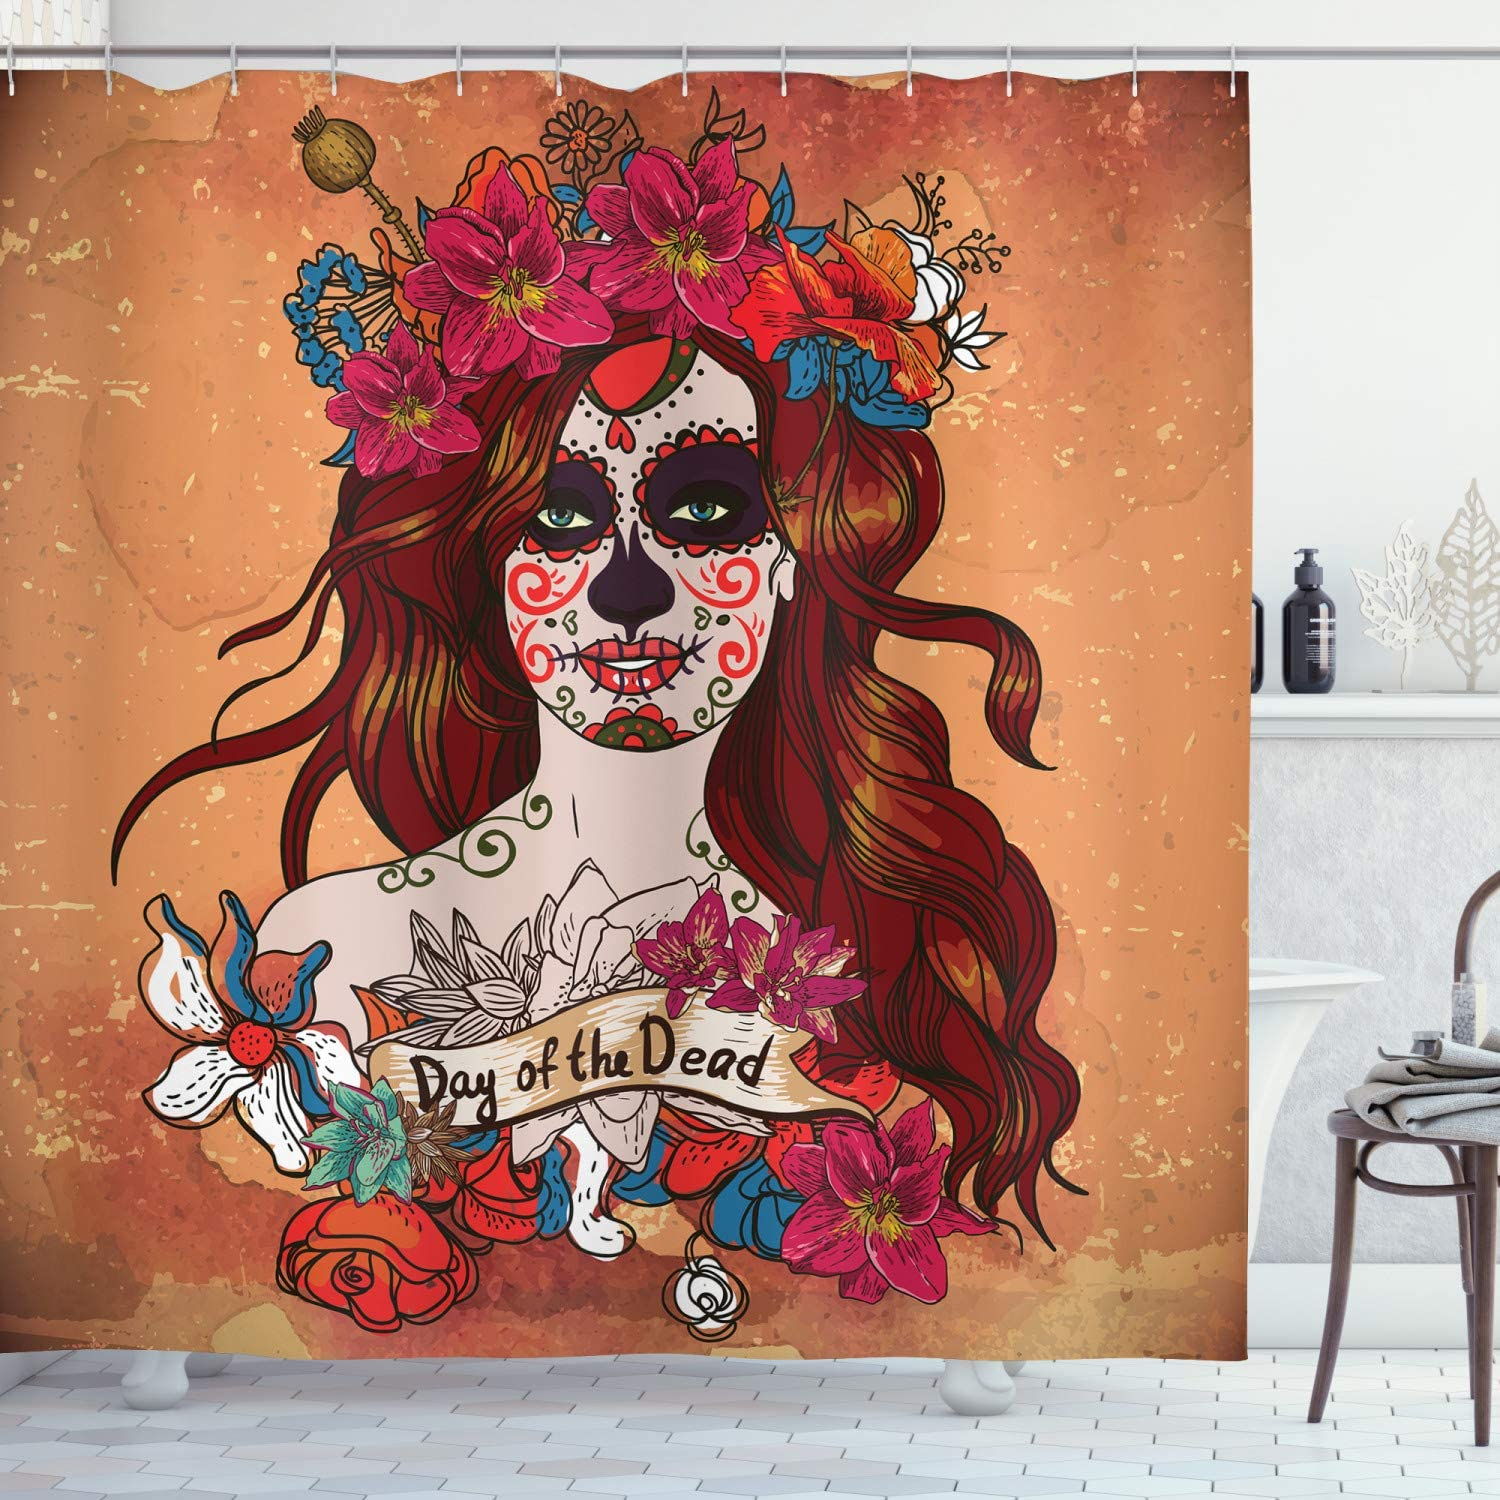 Ambesonne Day of The Dead Shower Curtain, Dia de Los Muertos Spanish Culture Mexican Skull Art, Cloth Fabric Bathroom Decor Set with Hooks, 75